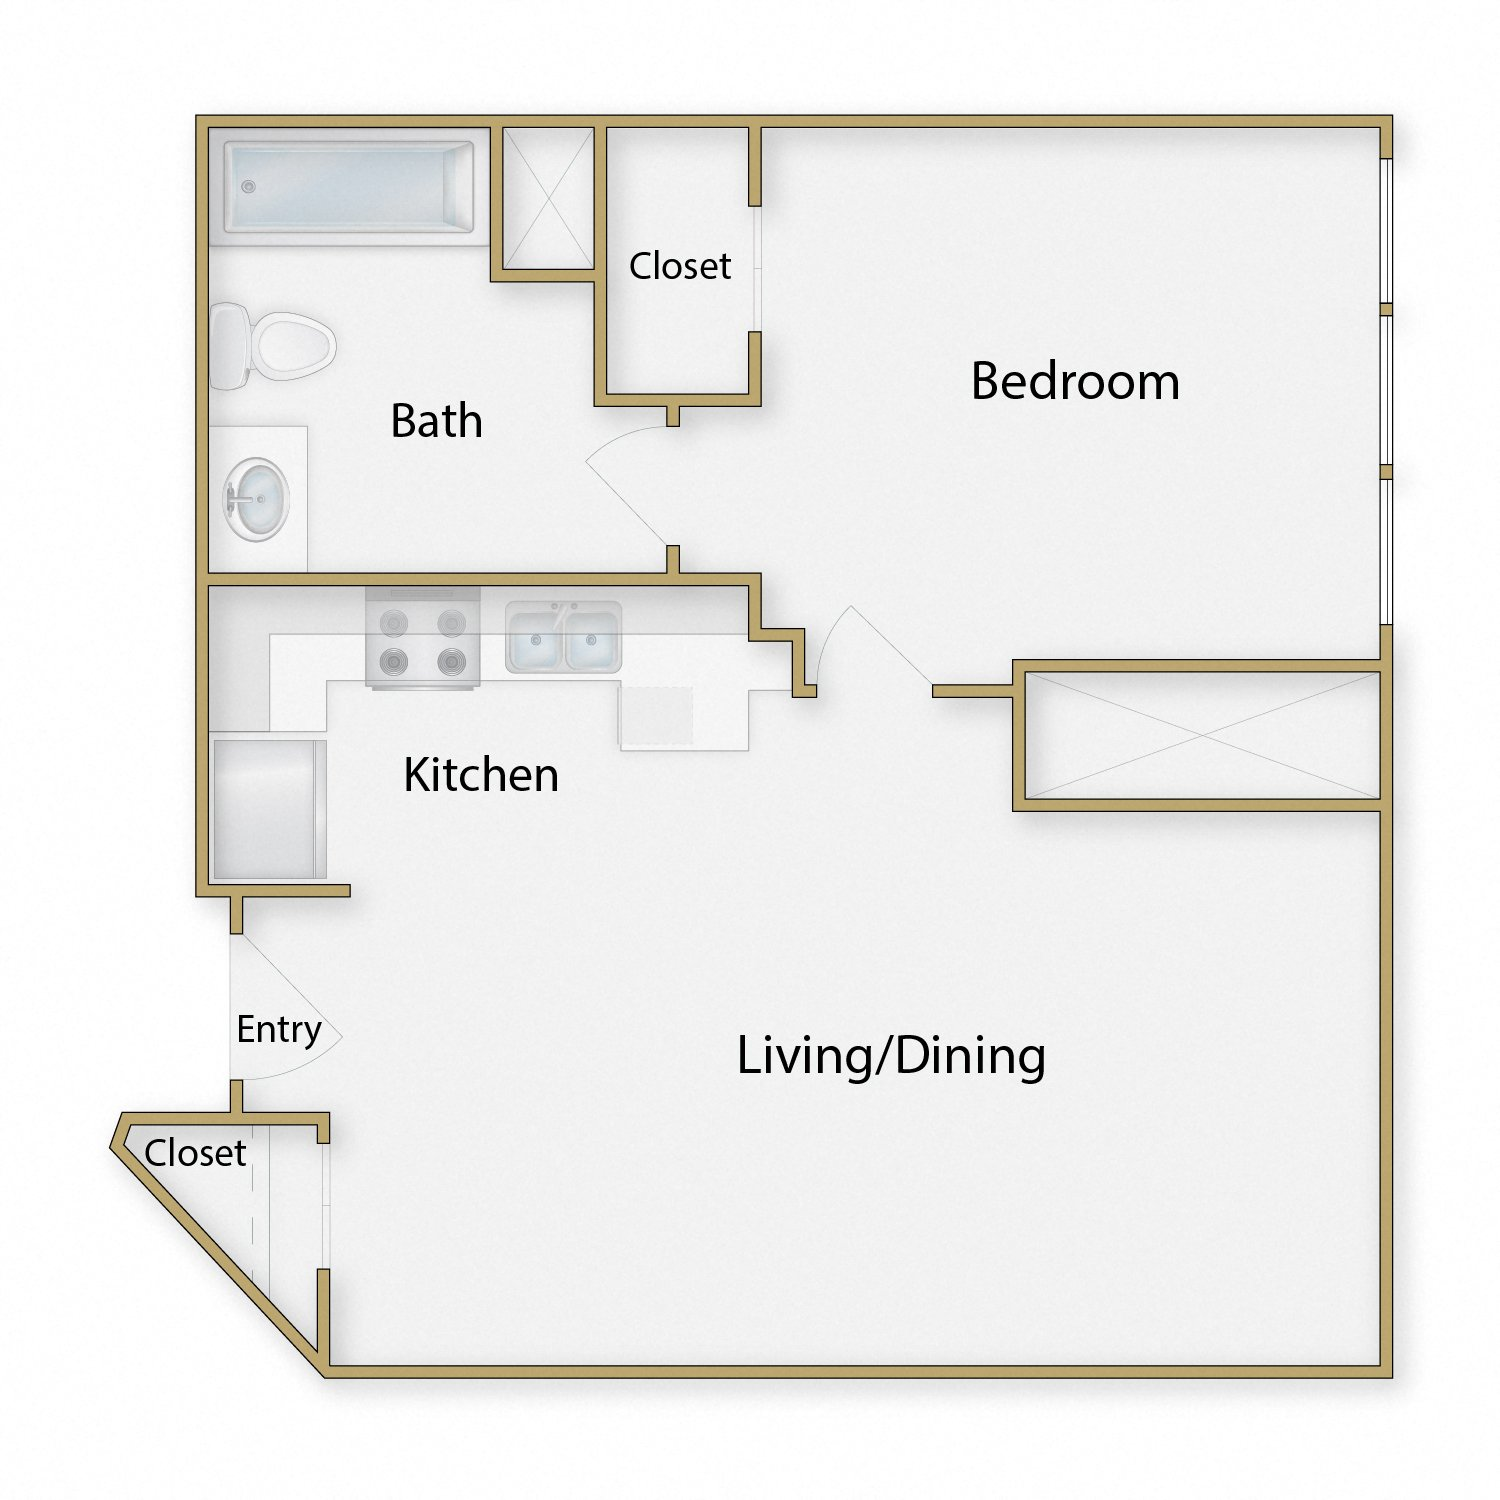 Wharf floor plan diagram. One bedroom, one bathroom, and an open kitchen dining and living area.